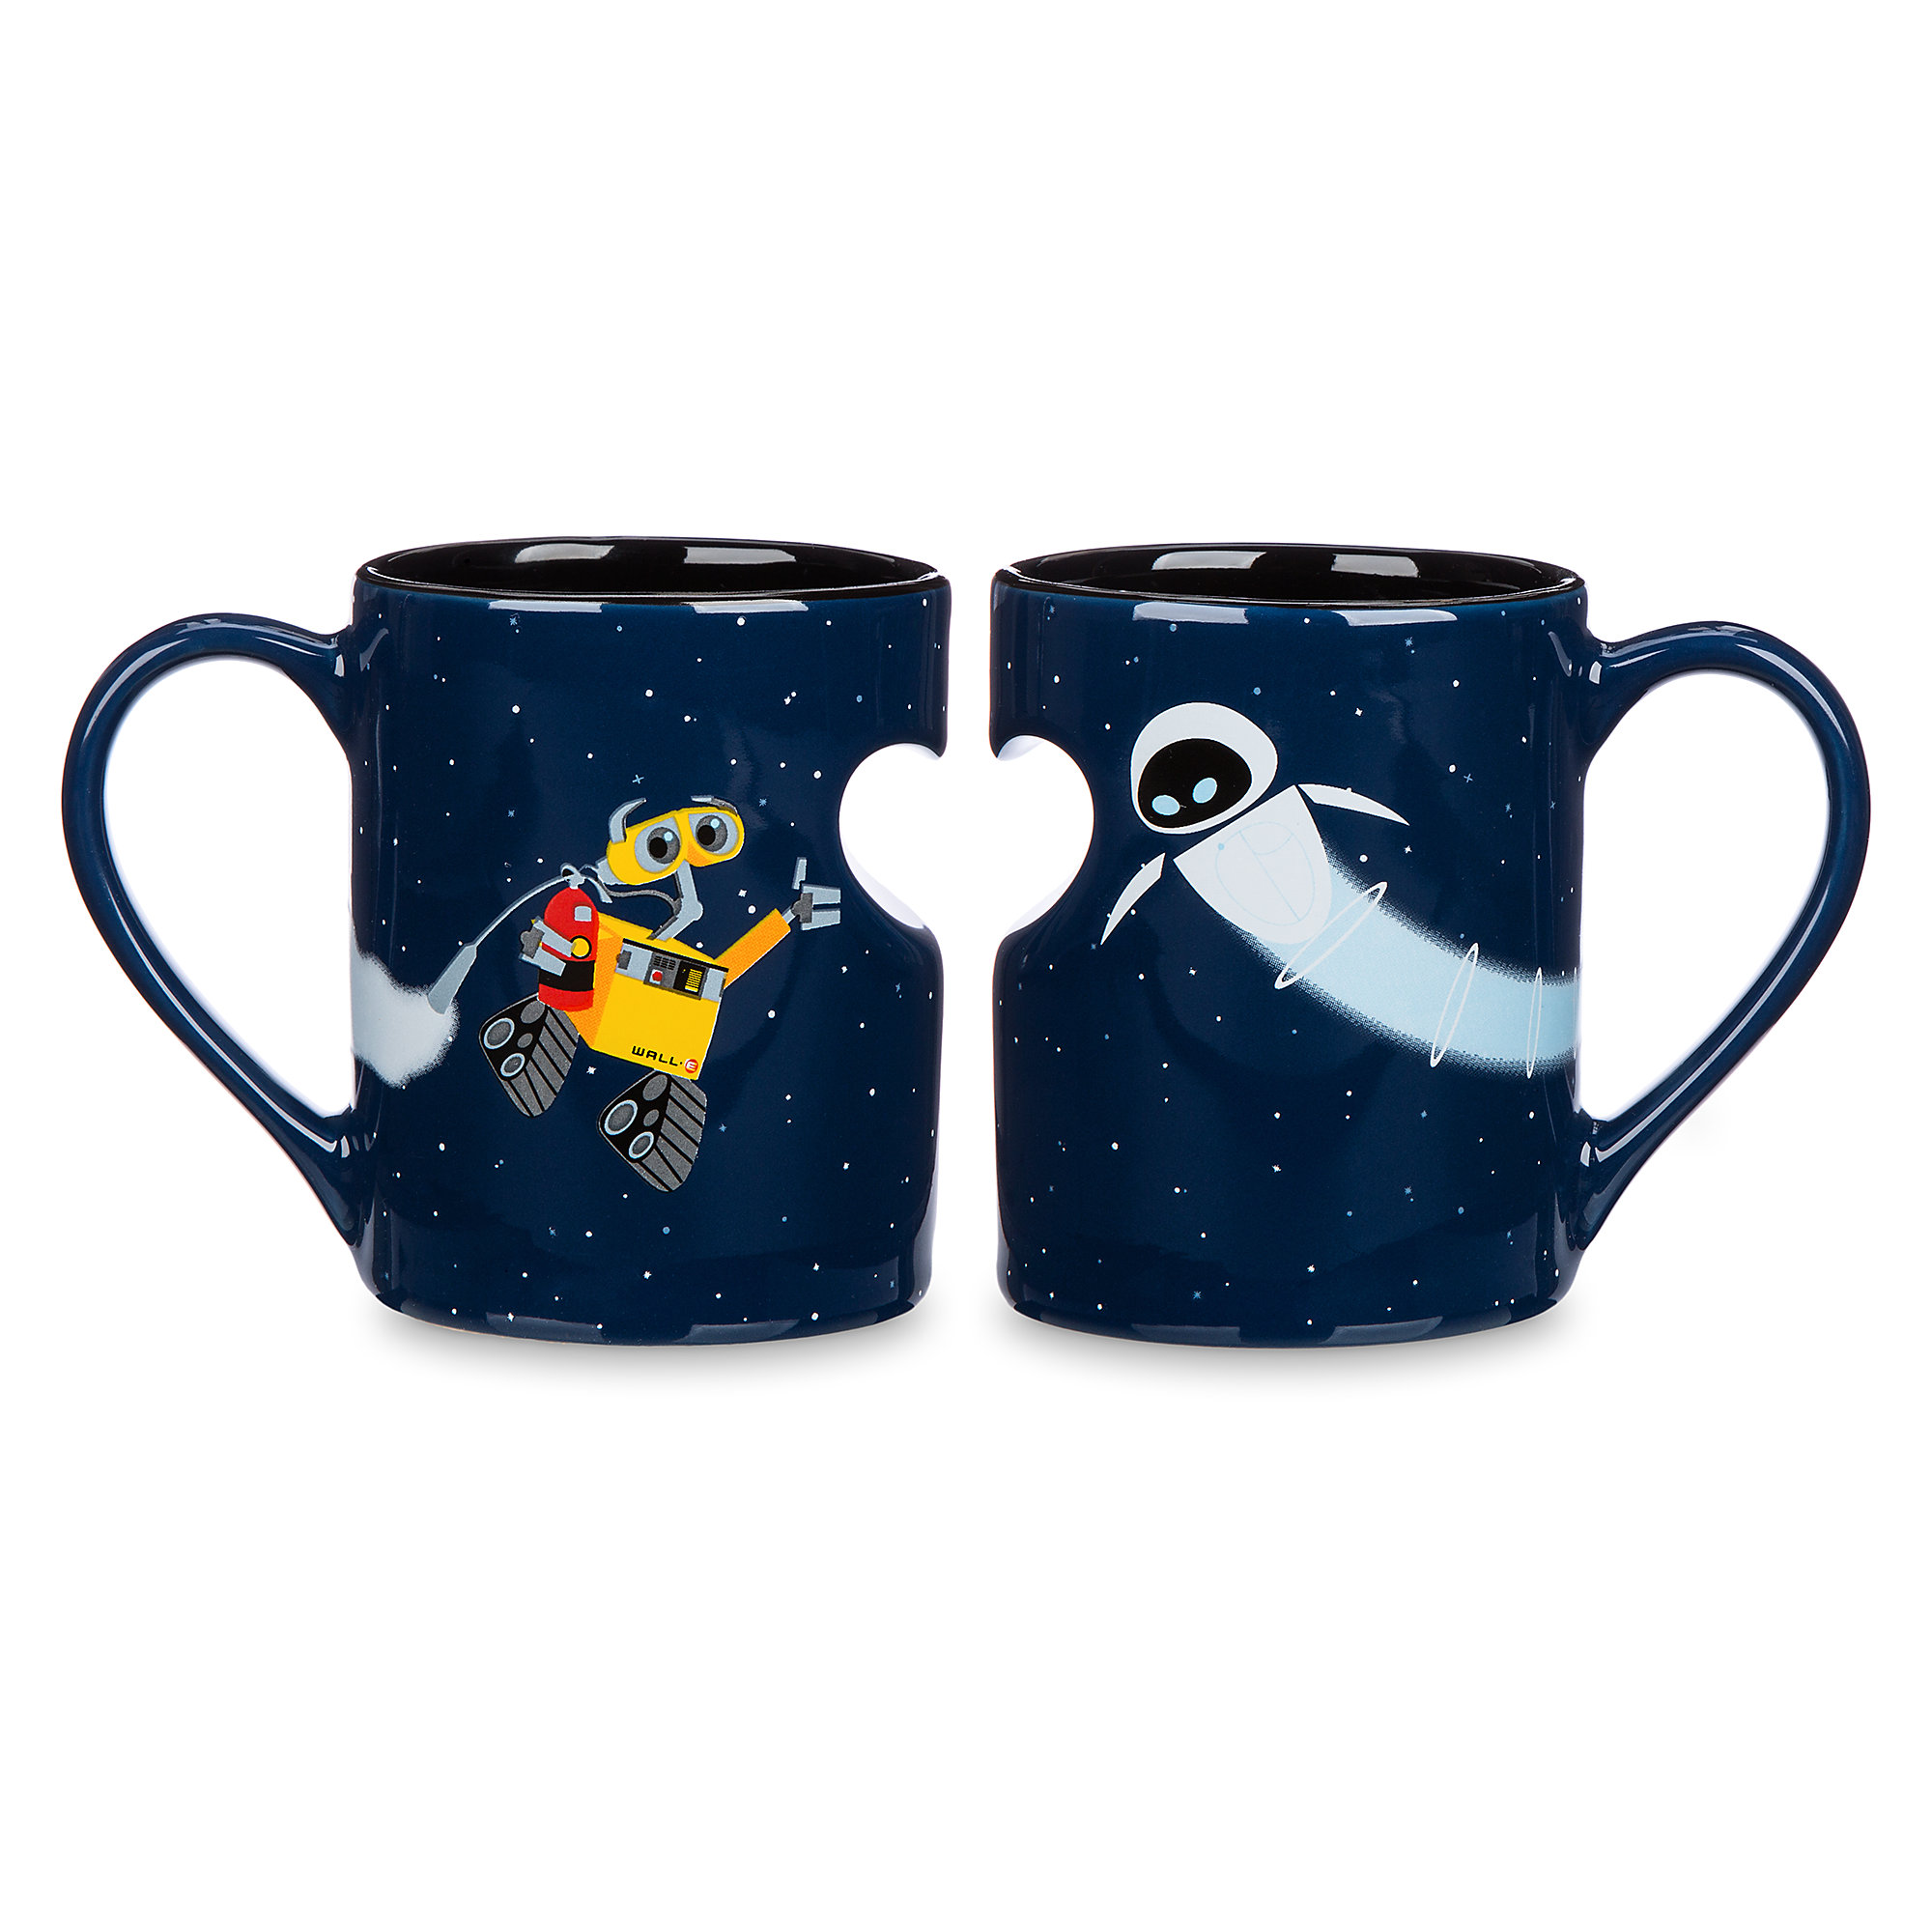 WALL•E and EVE Mug Set